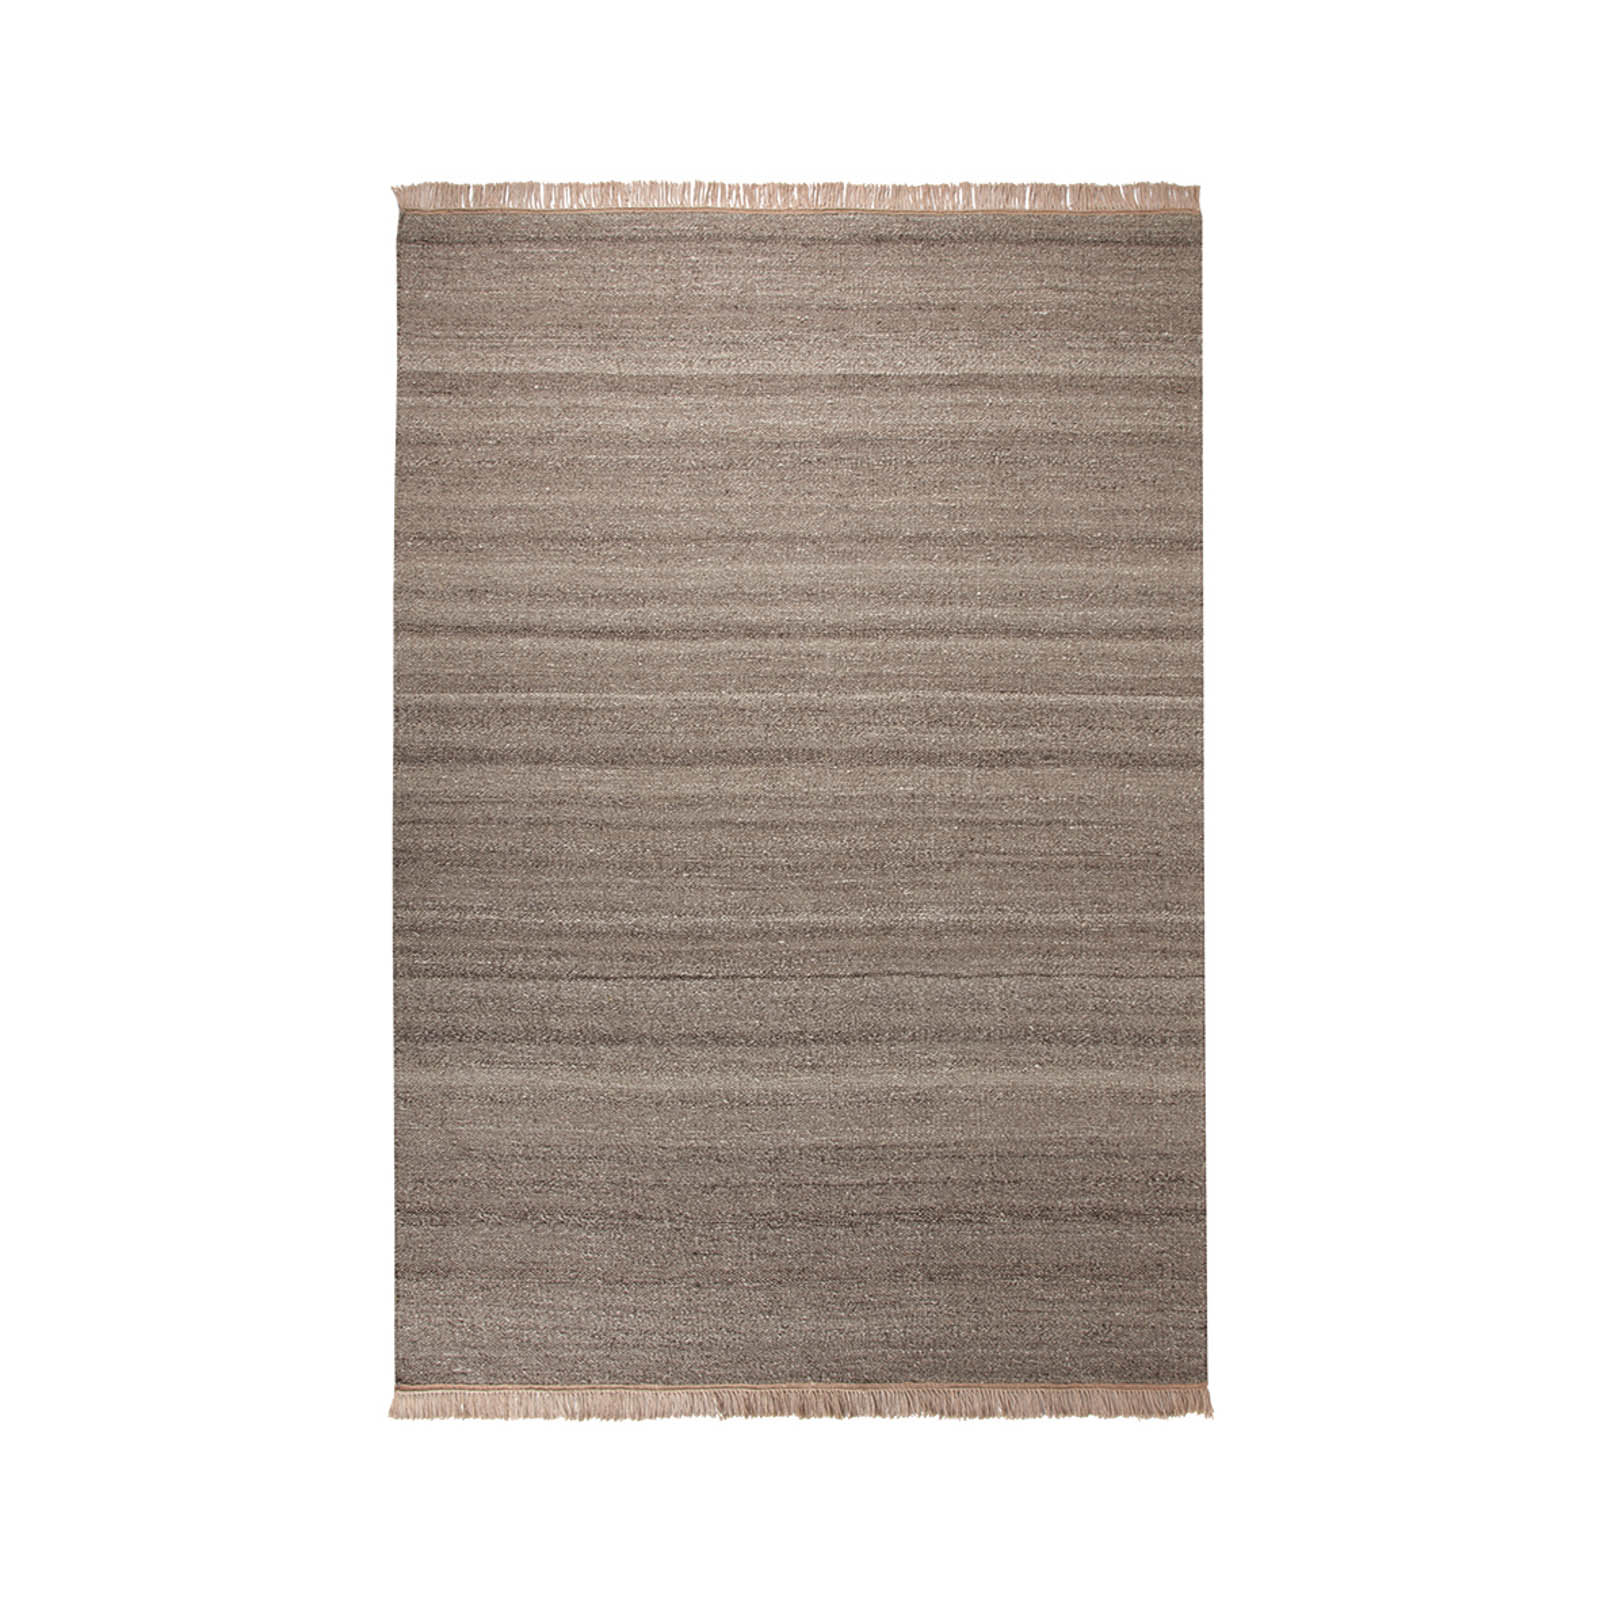 Esprit Blurred Rugs 7015 04 Taupe